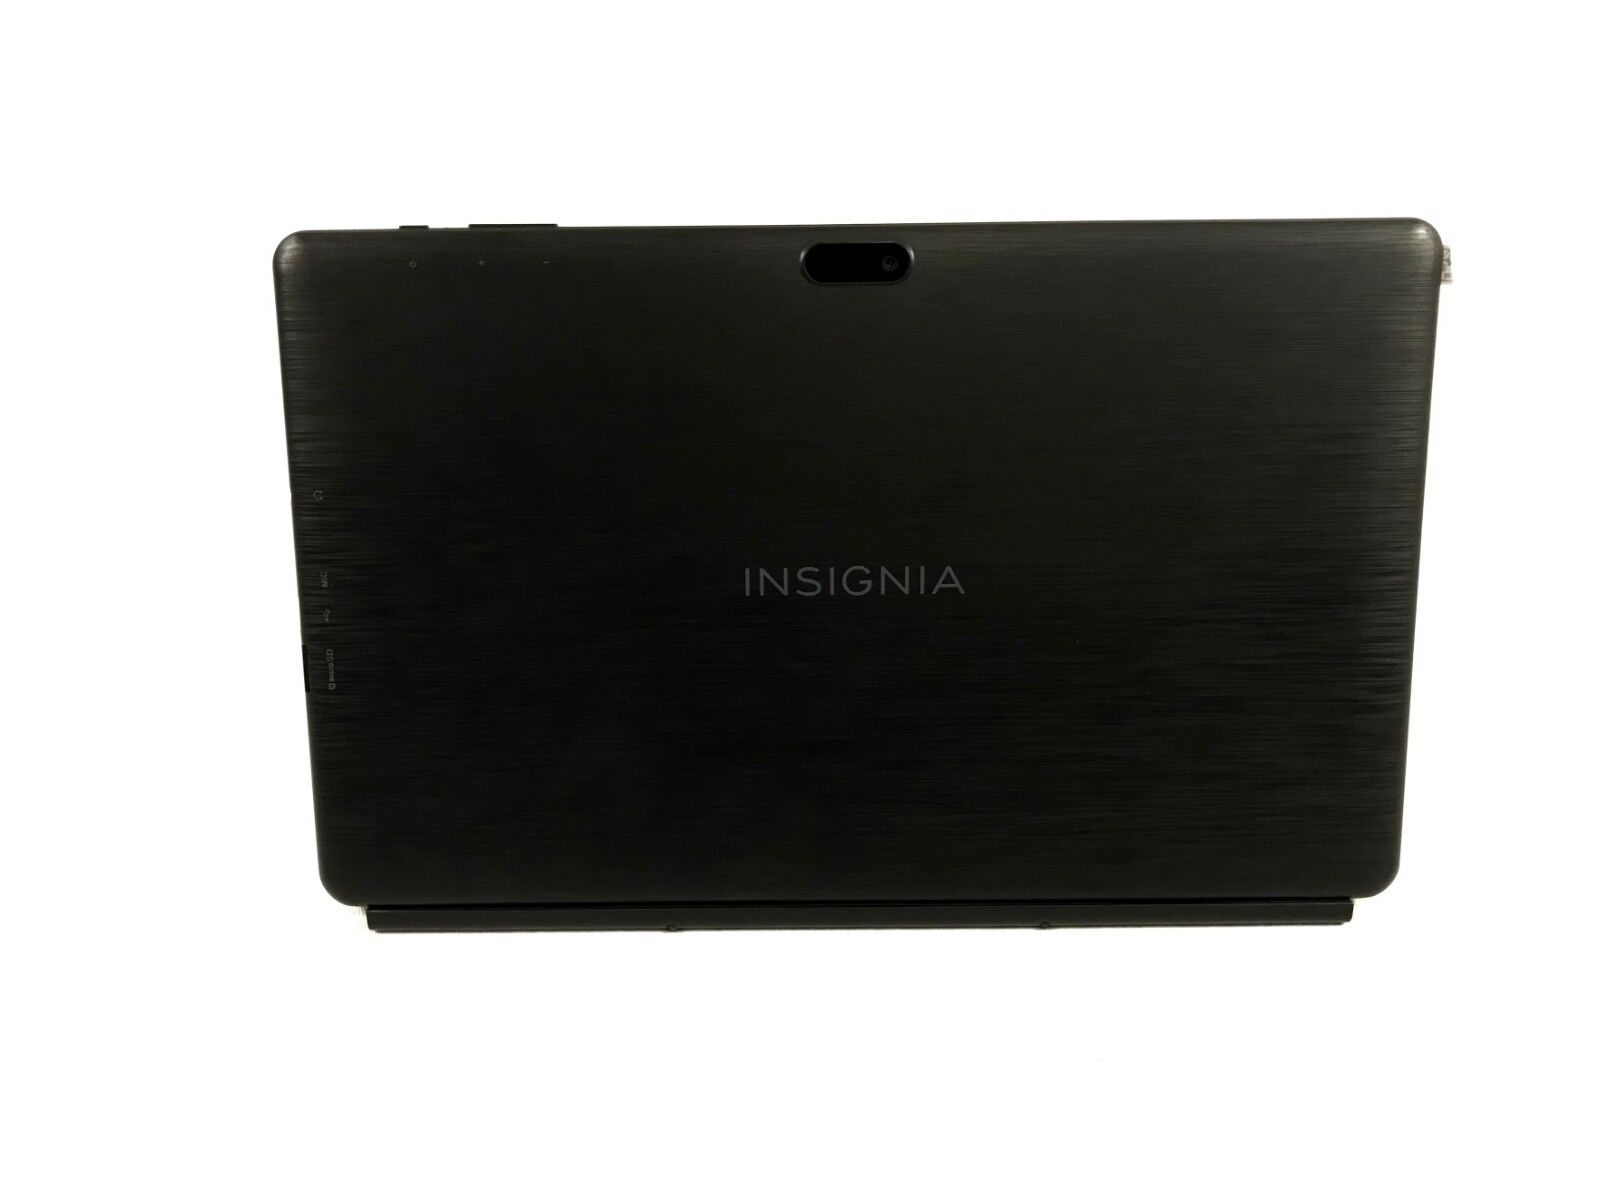 insignia p11a8100 11.6 - table... Image 3